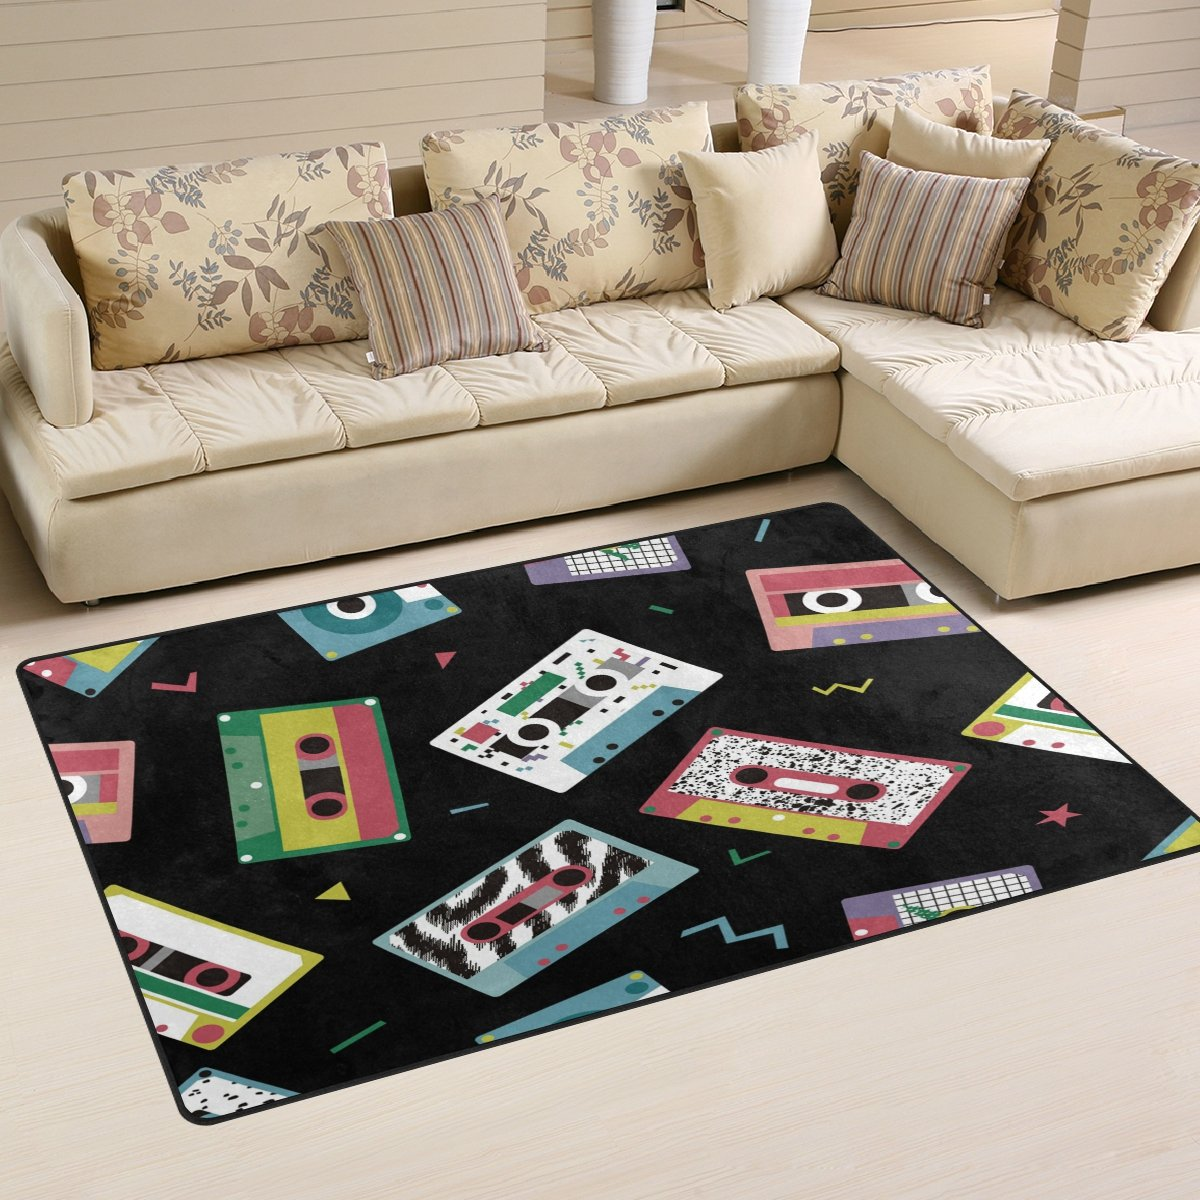 WOZO Audio Tapes in Retro 80s Style Music Black Area Rug Rugs Non-Slip Floor Mat Doormats for Living Room Bedroom 60 x 39 inches